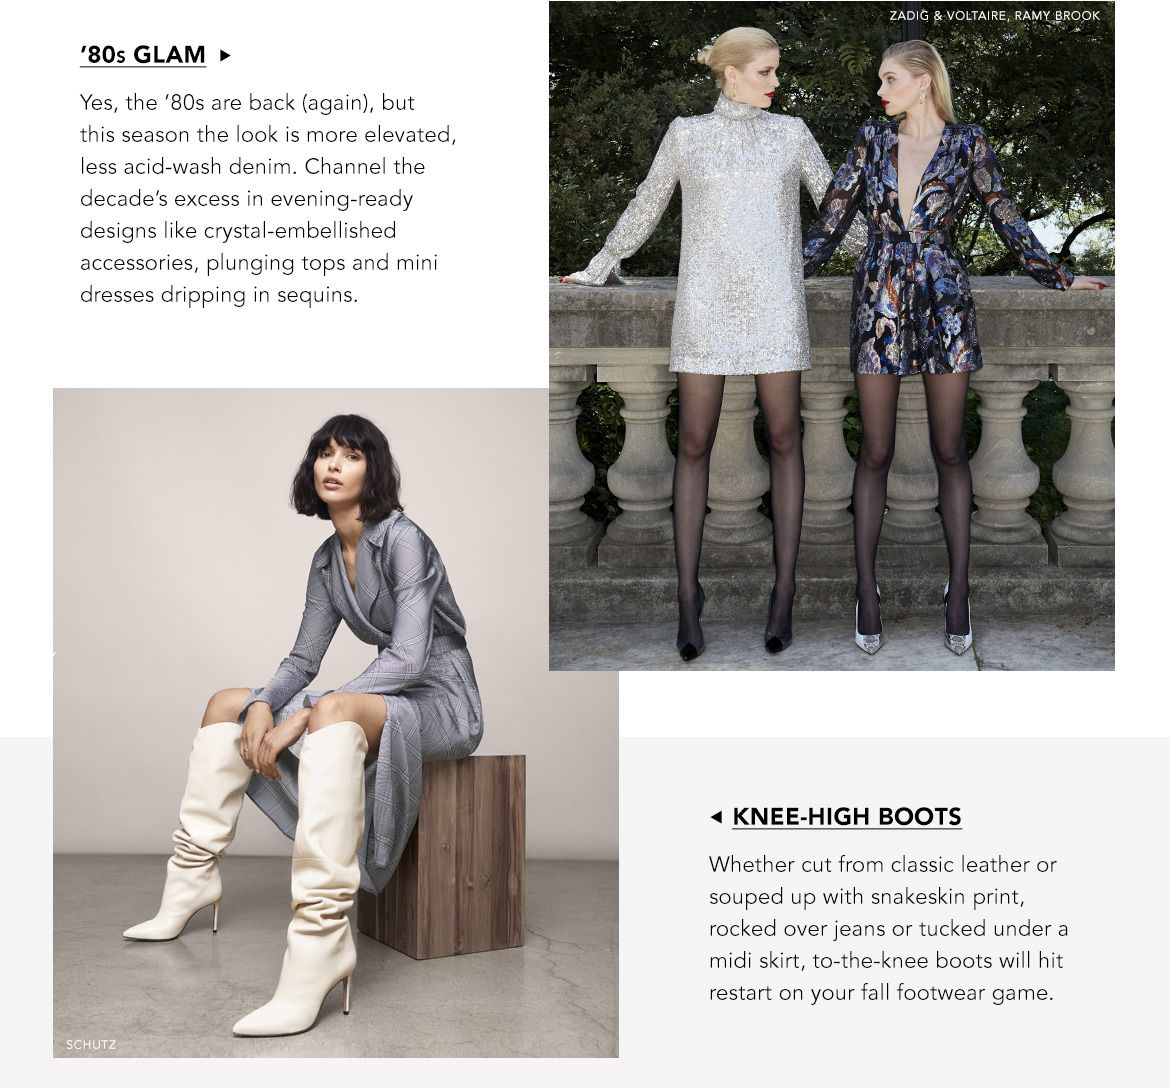 Explore 80s Glam and Knee High Boots